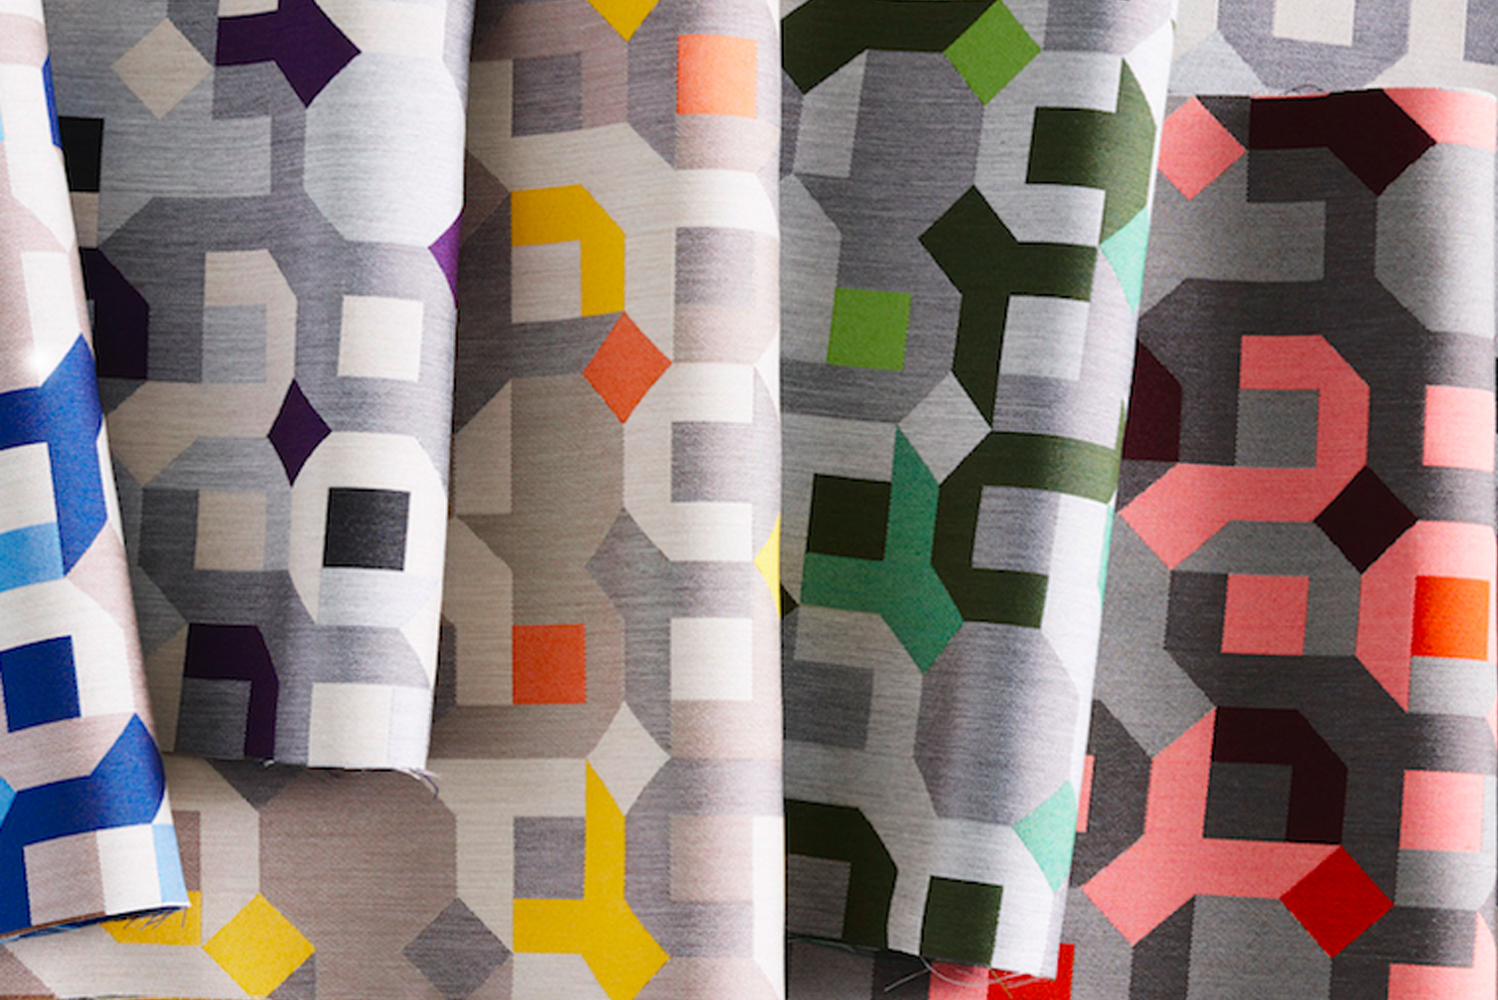 Carnegie launched a new collection of upholstery textiles, Game Theory.